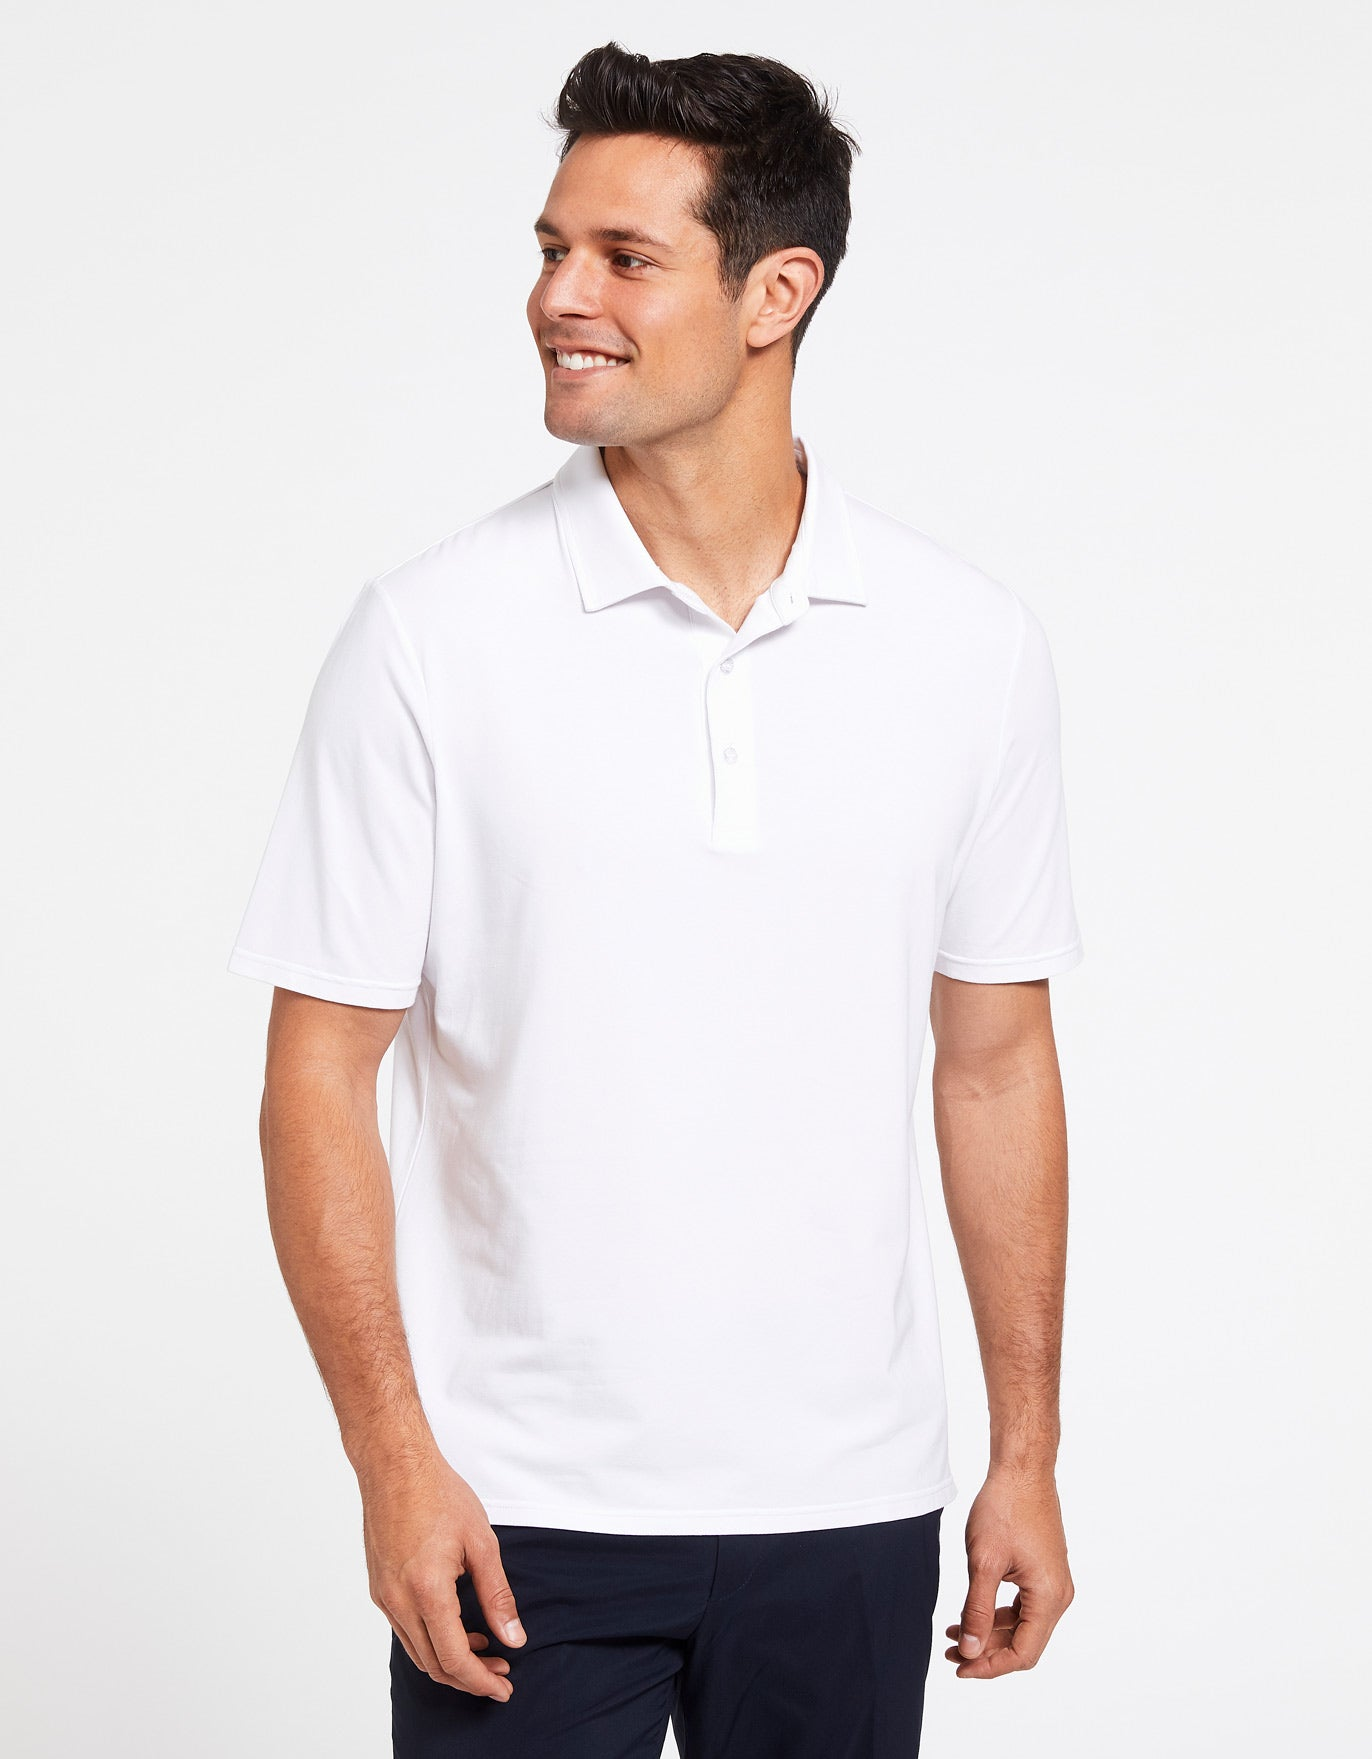 Solbari Sun Protection Men's UPF50+ Short Sleeve Polo Shirt in White Sensitive Collection